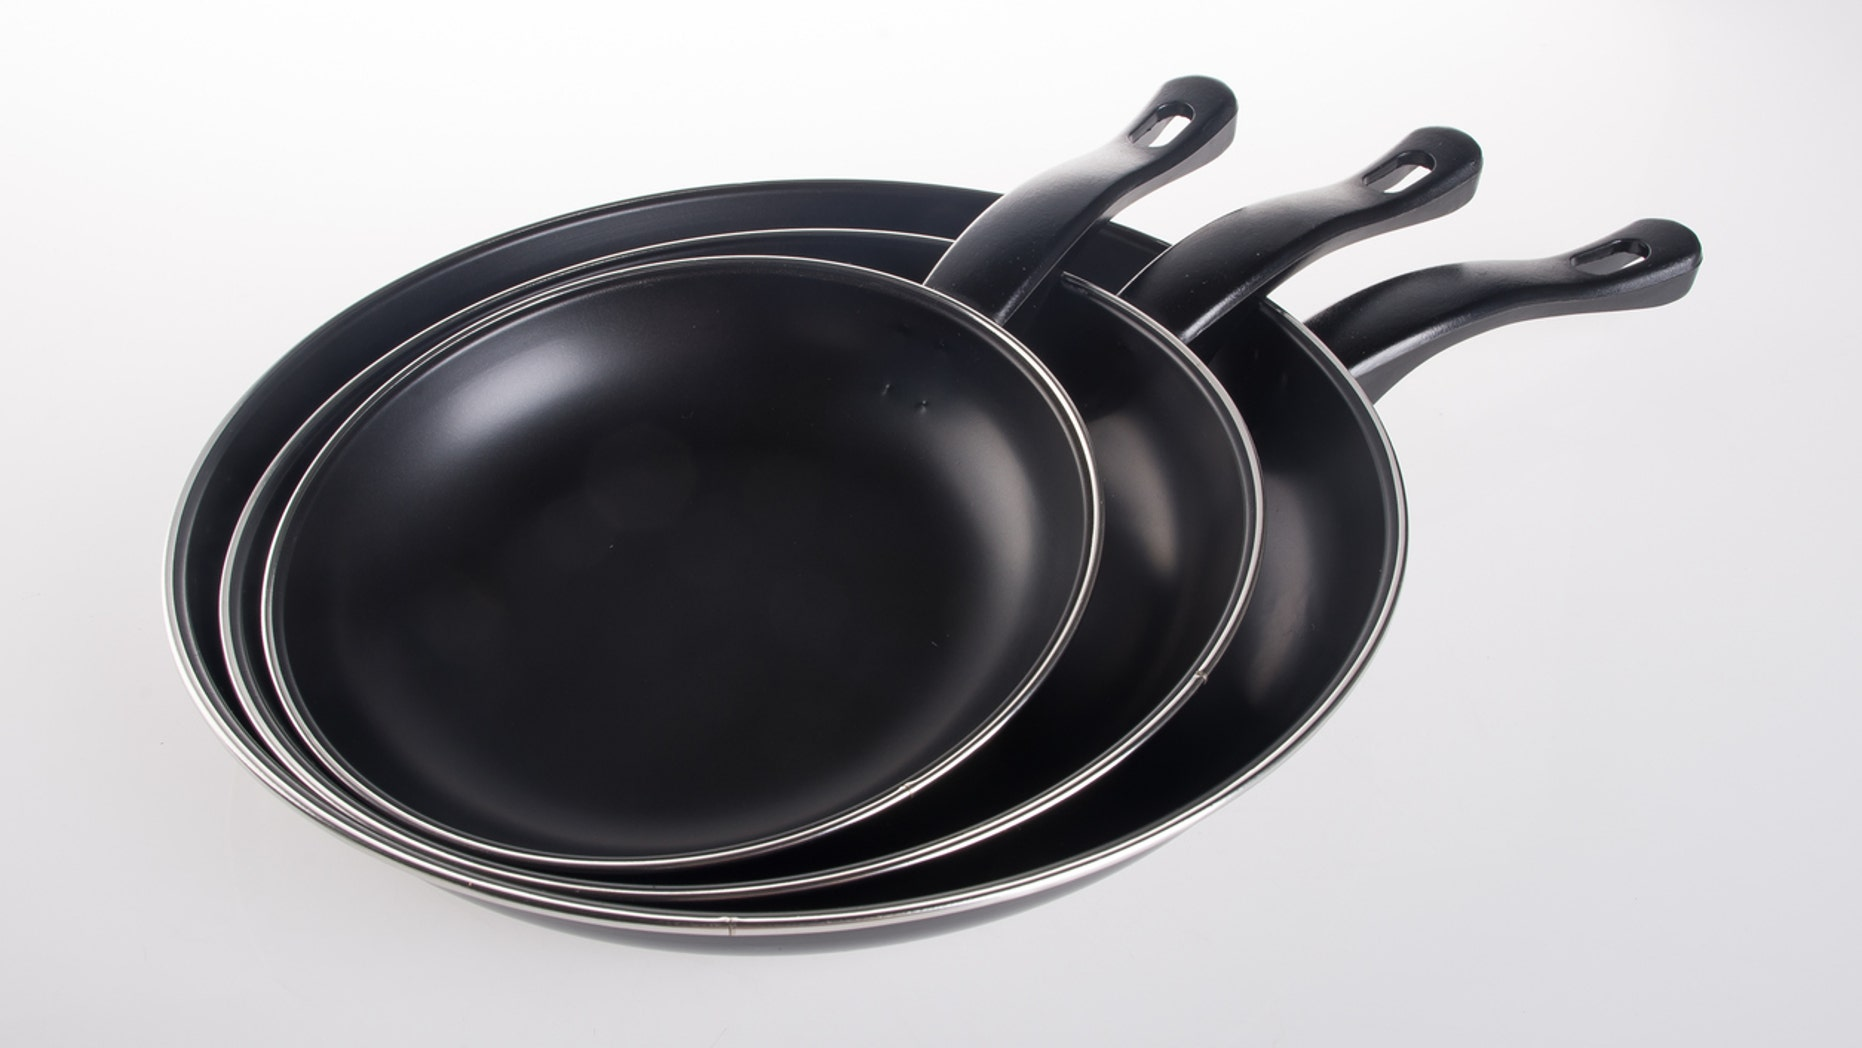 Harvard researchers have observed that the chemicals in nonstick pans could contribute to cancer, high cholesterol, and problems with immunity